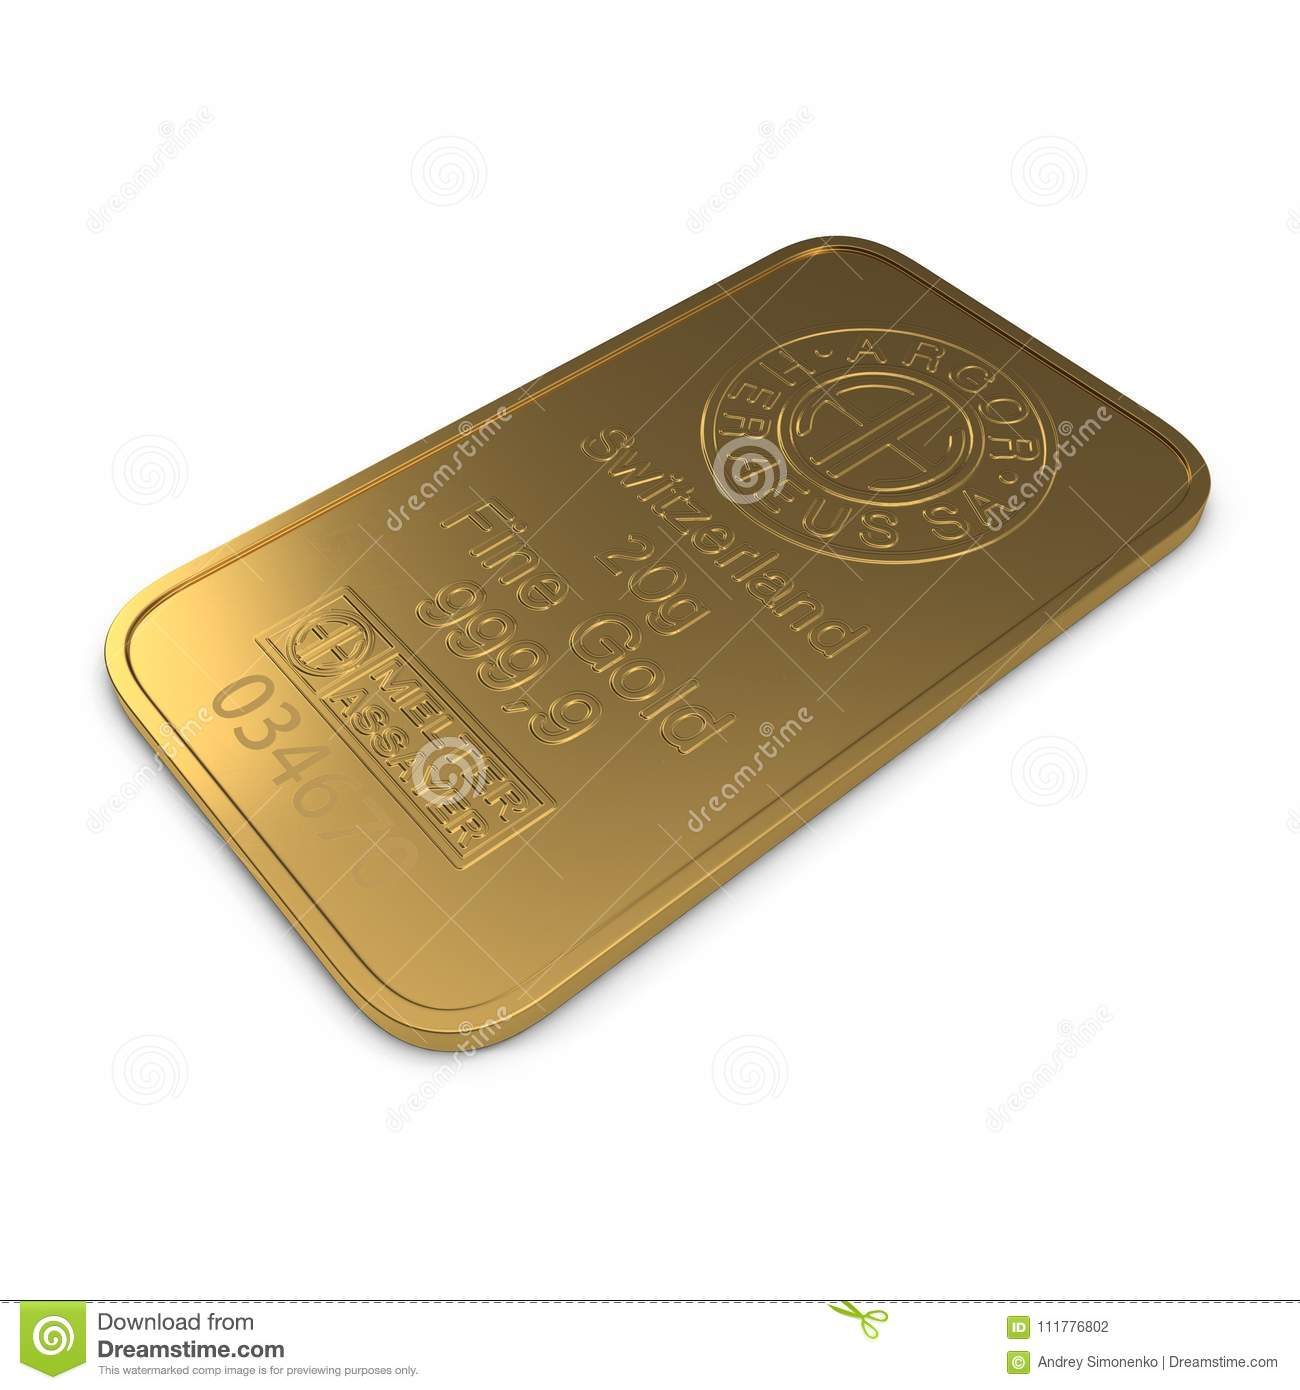 Gold bar 20g isolated on white. 3D illustration